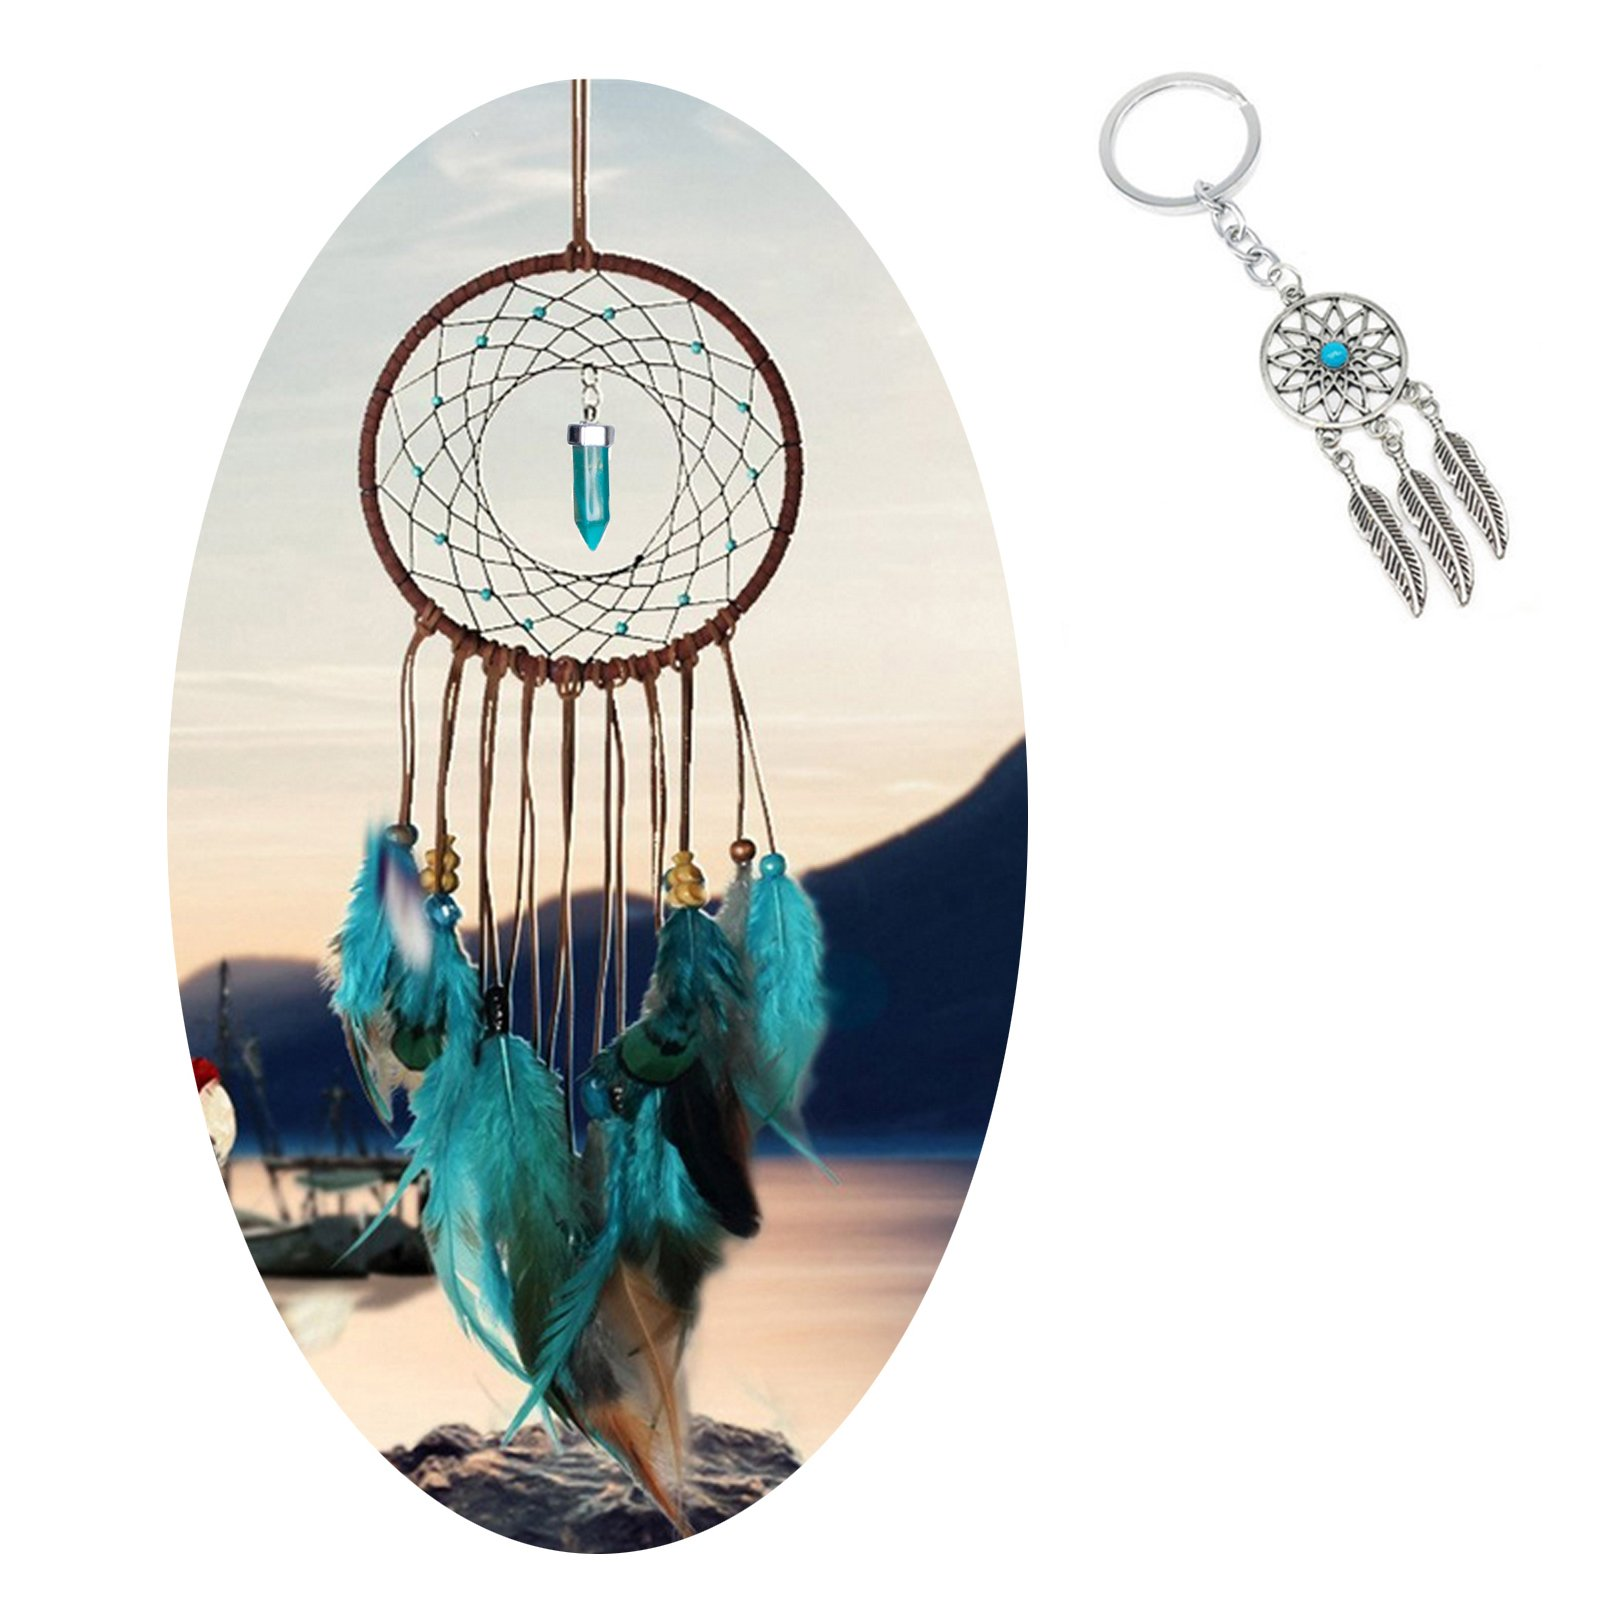 AWAYTR Forest Dreamcatcher Gift Handmade Dream Catcher Net with Feathers Wall Hanging Decoration Ornament (Turquoise with Feather) c